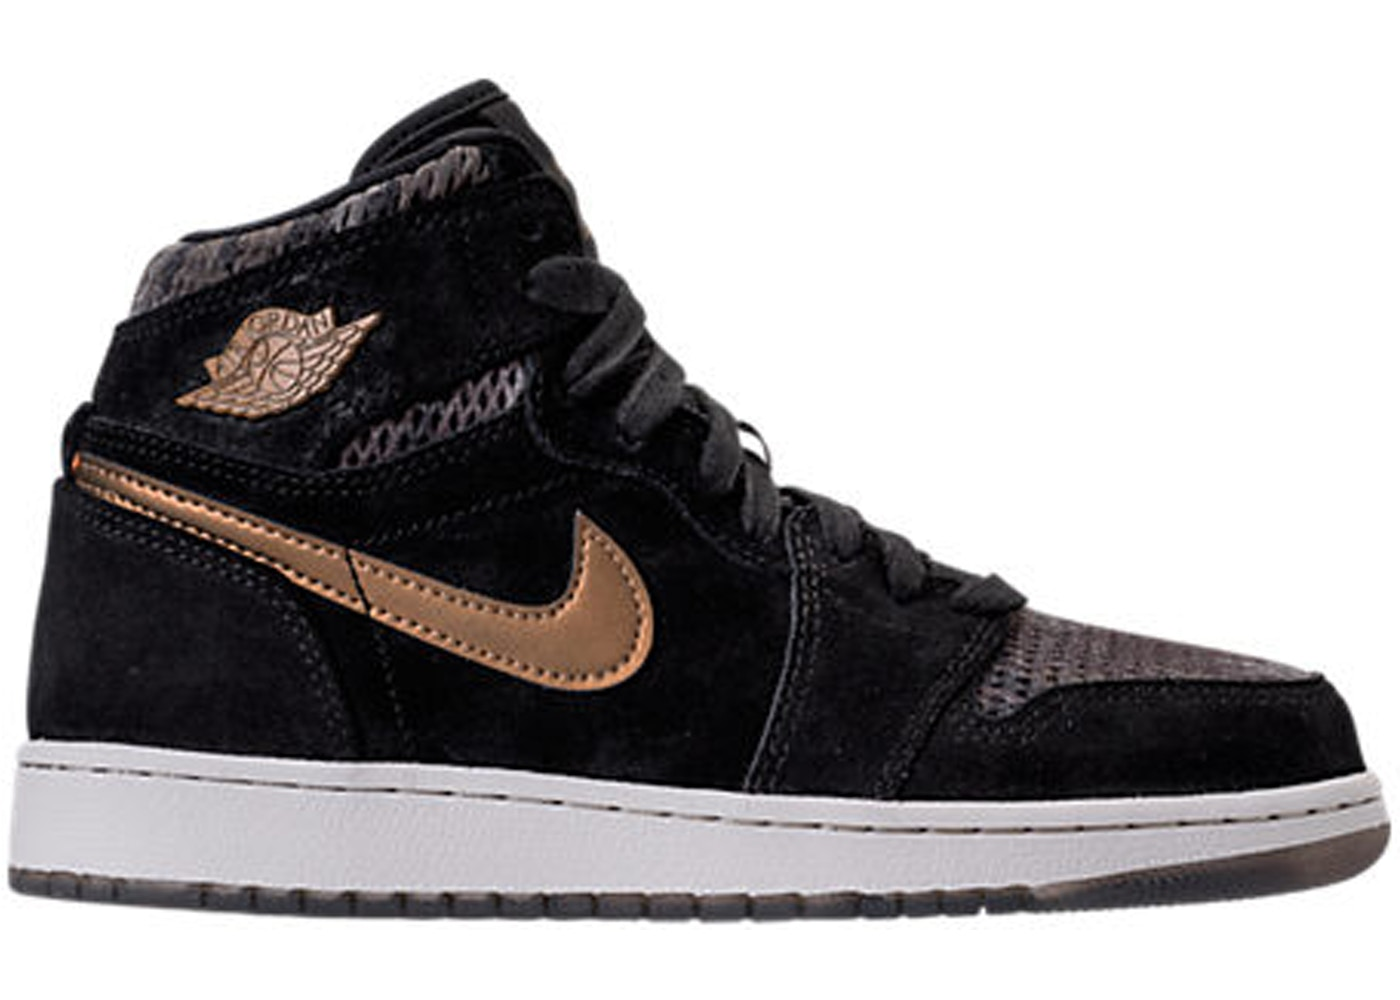 522118214df Jordan 1 Retro High Heiress Camo (GS) - 832596-030